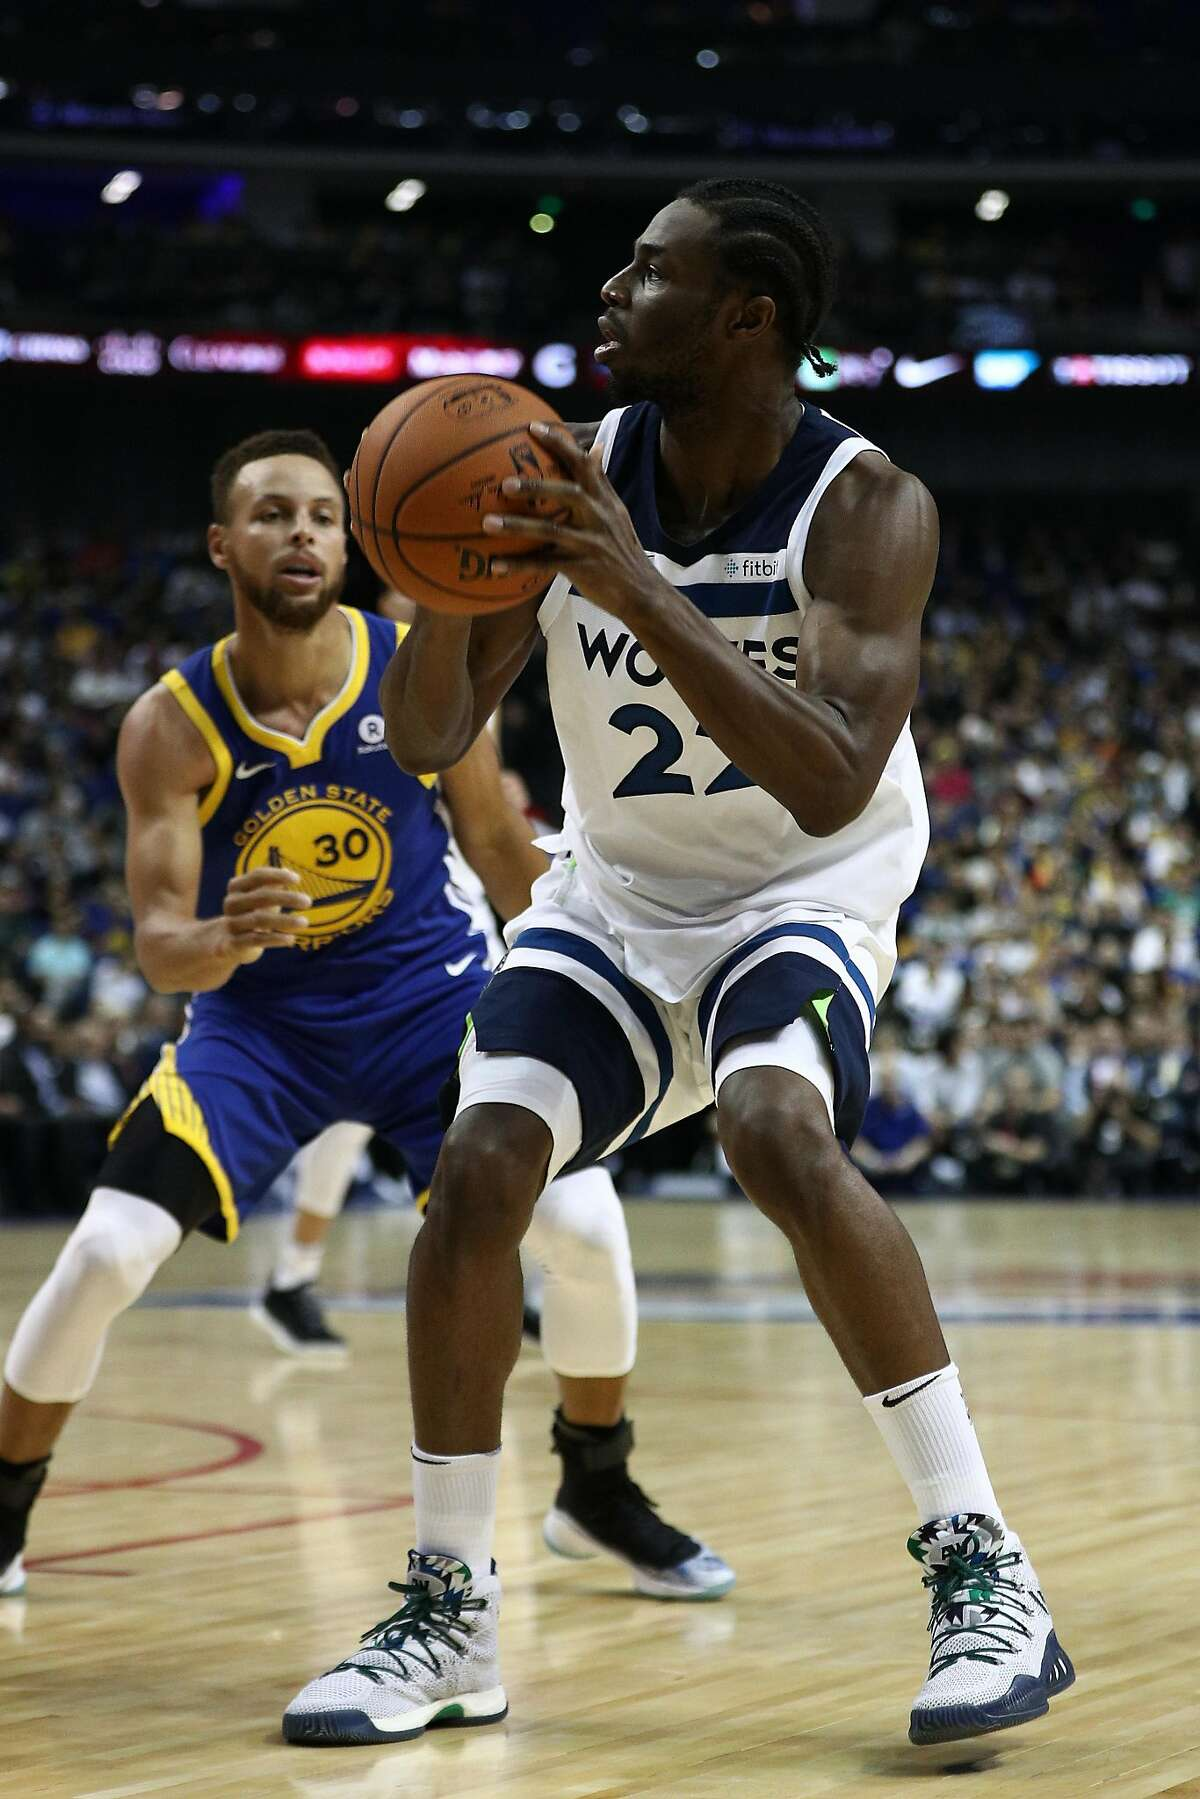 SHANGHAI, CHINA - OCTOBER 05: Andrew Wiggins #22 of the Minnesota Timberwolves in action against Stephen Curry #30 of the Golden State Warriors during the game between the Minnesota Timberwolves and the Golden State Warriors as part of 2017 NBA Global Ga